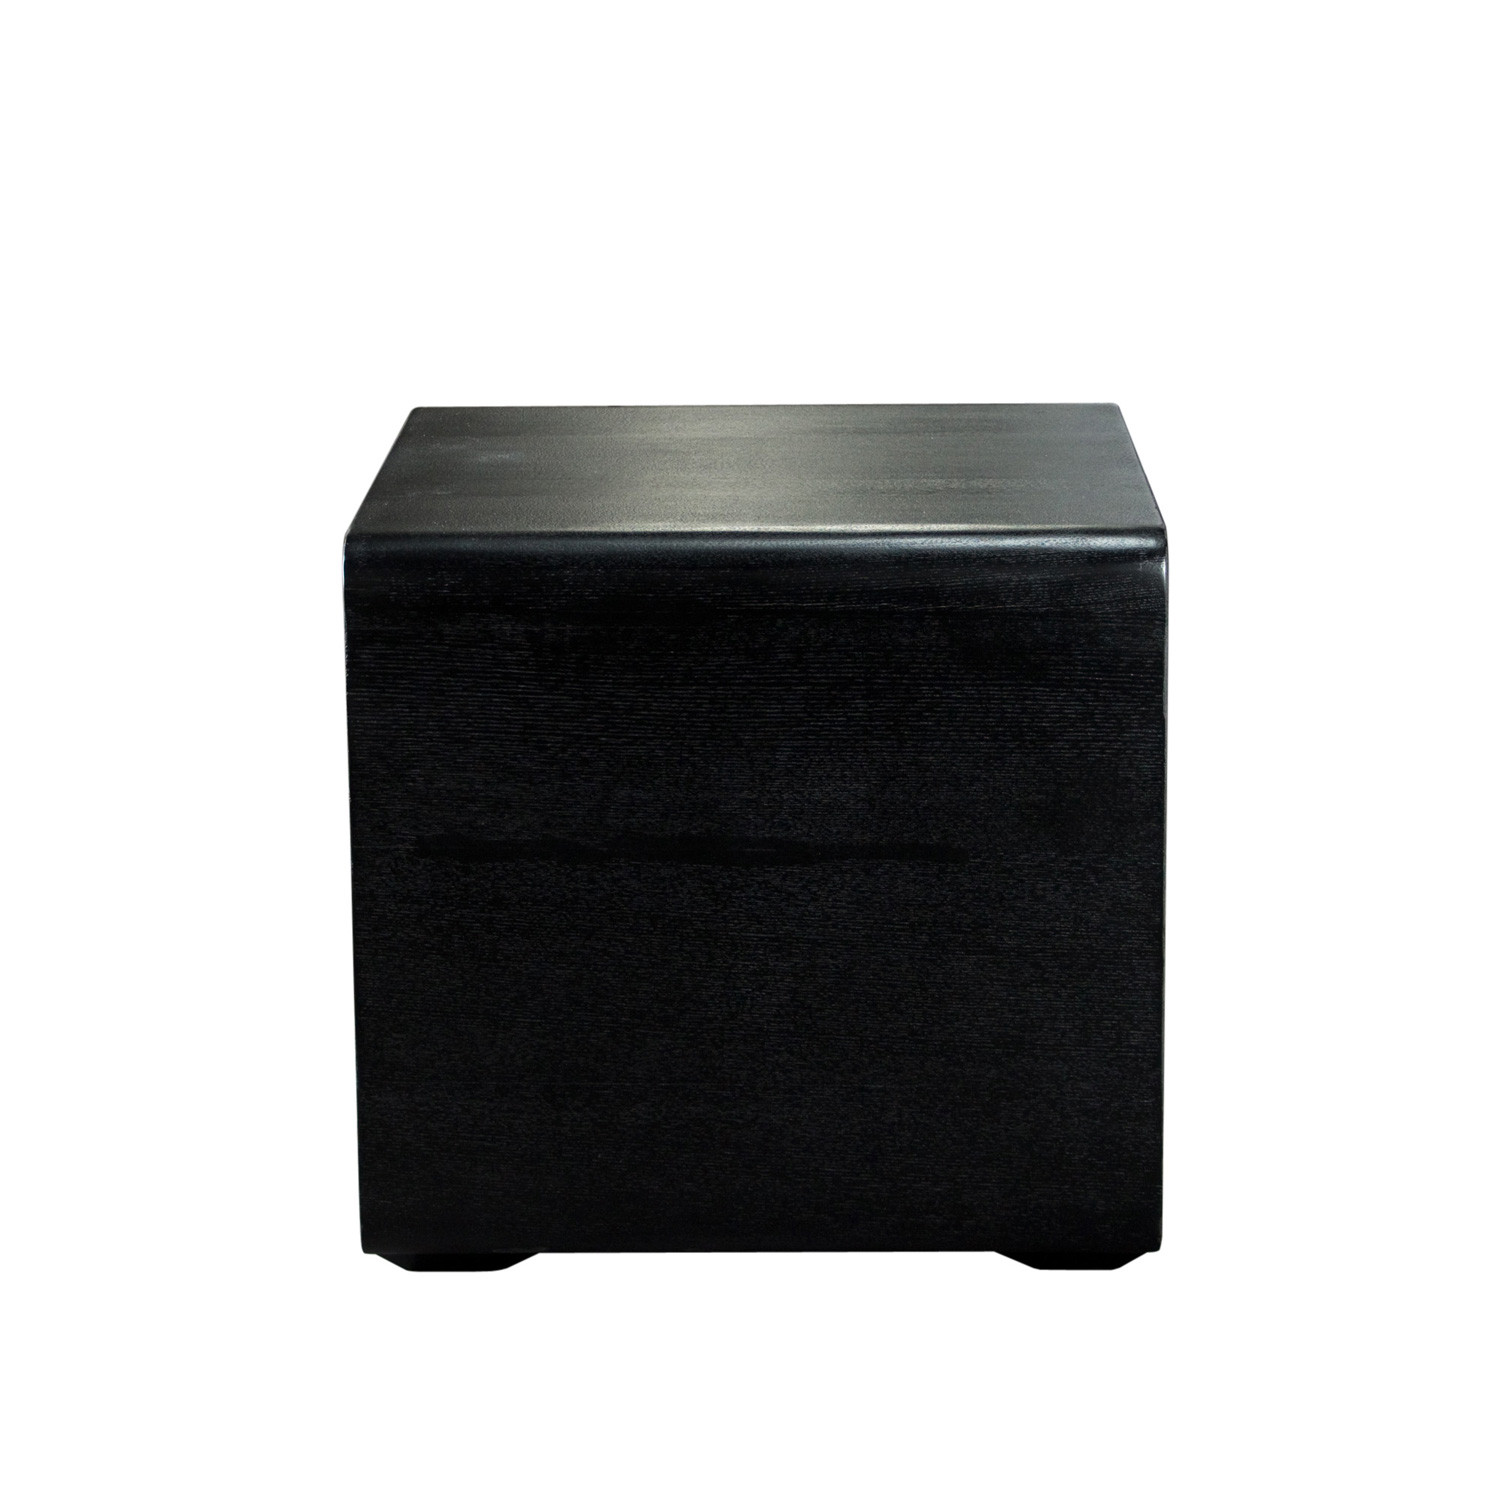 Low Profile Square End Table